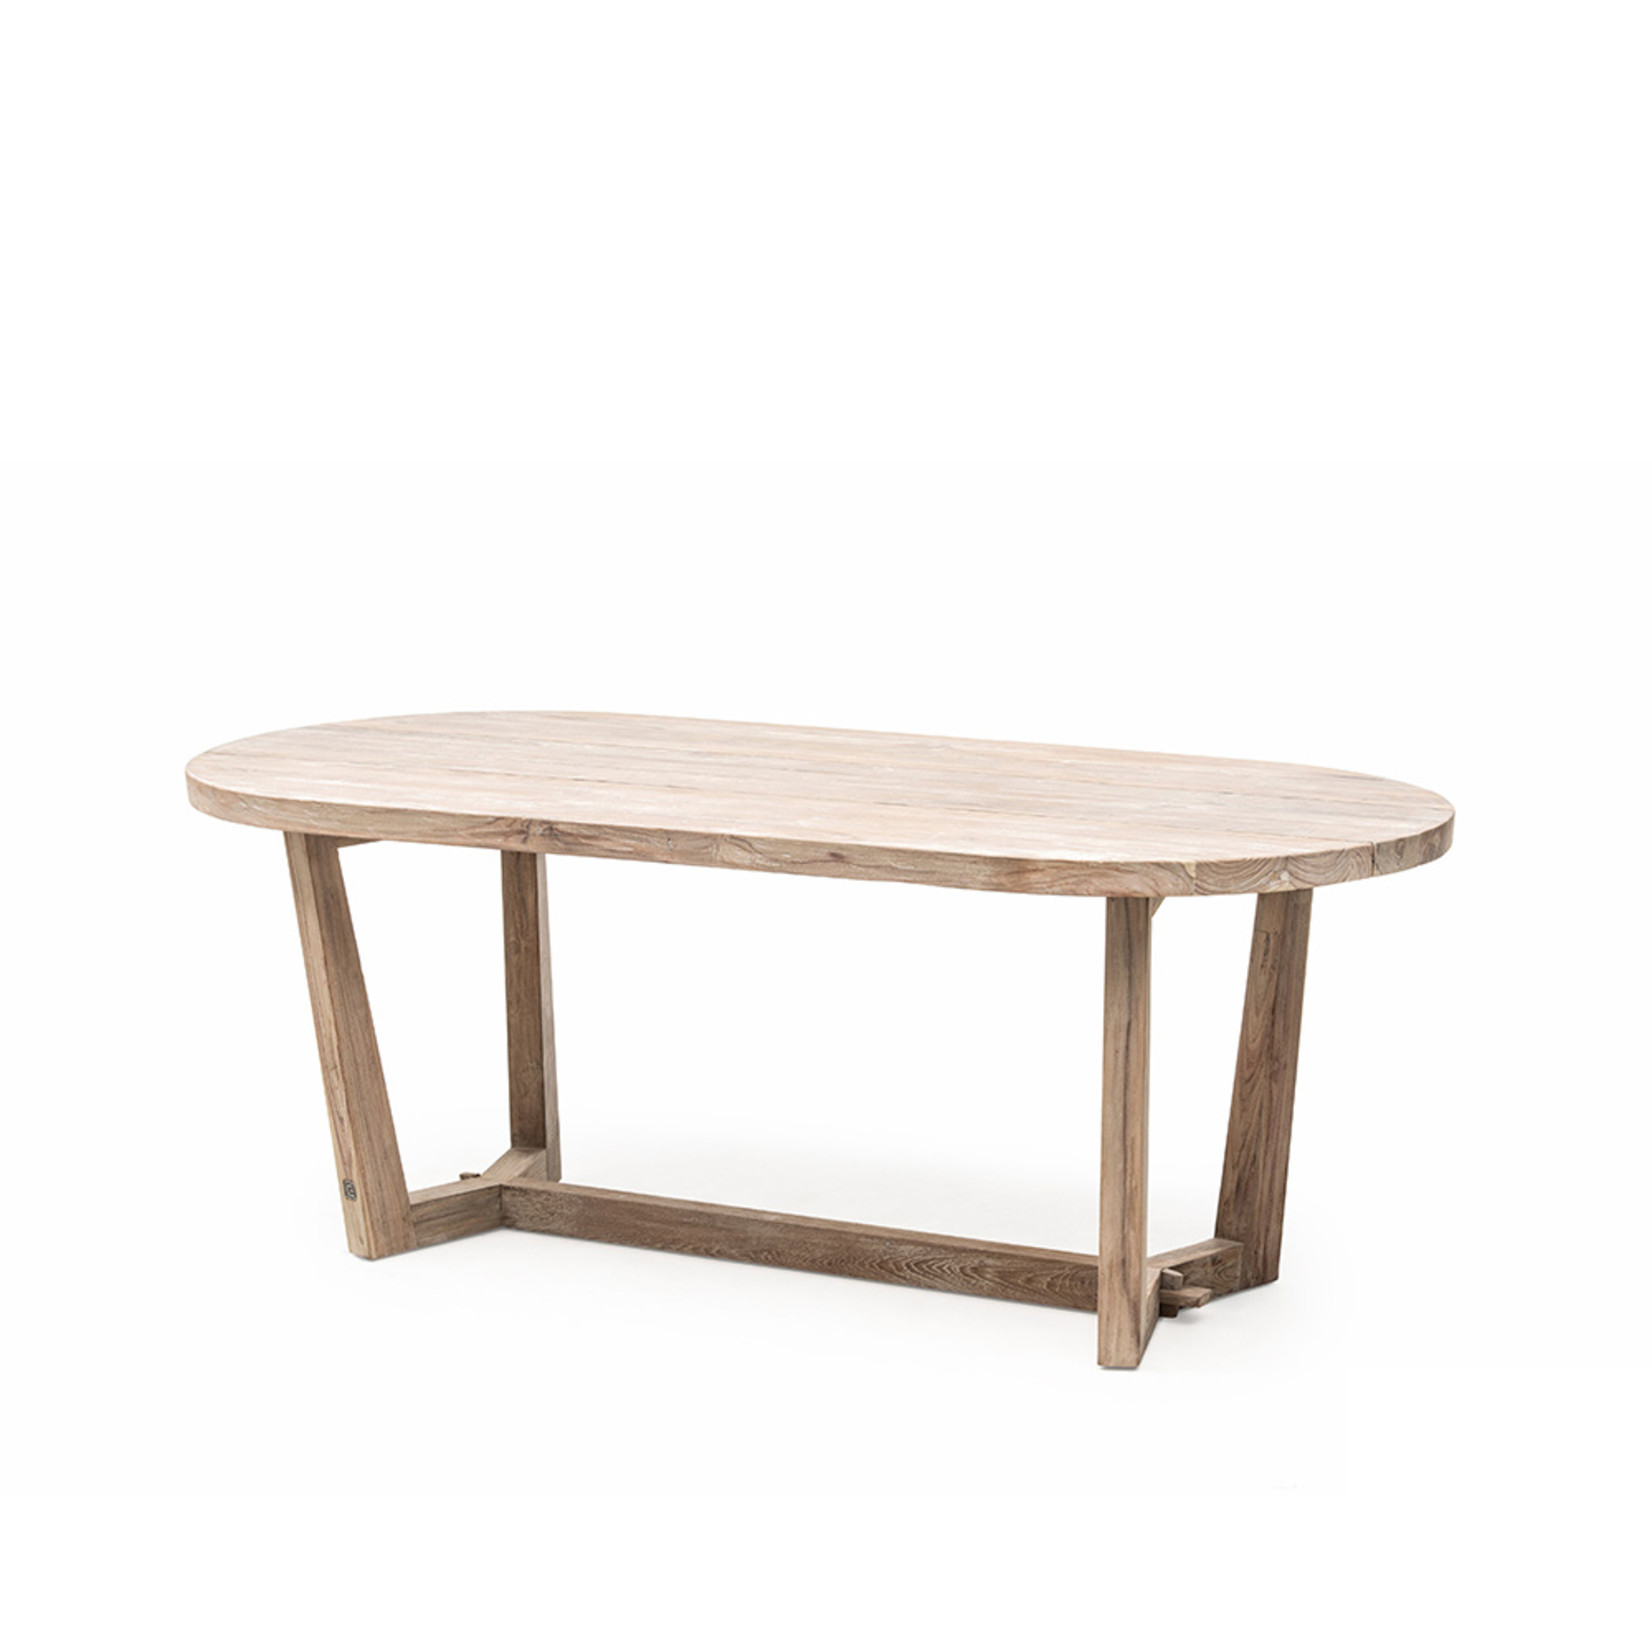 Gommaire Oval Table Dan Small   Reclaimed Teak Natural Gray